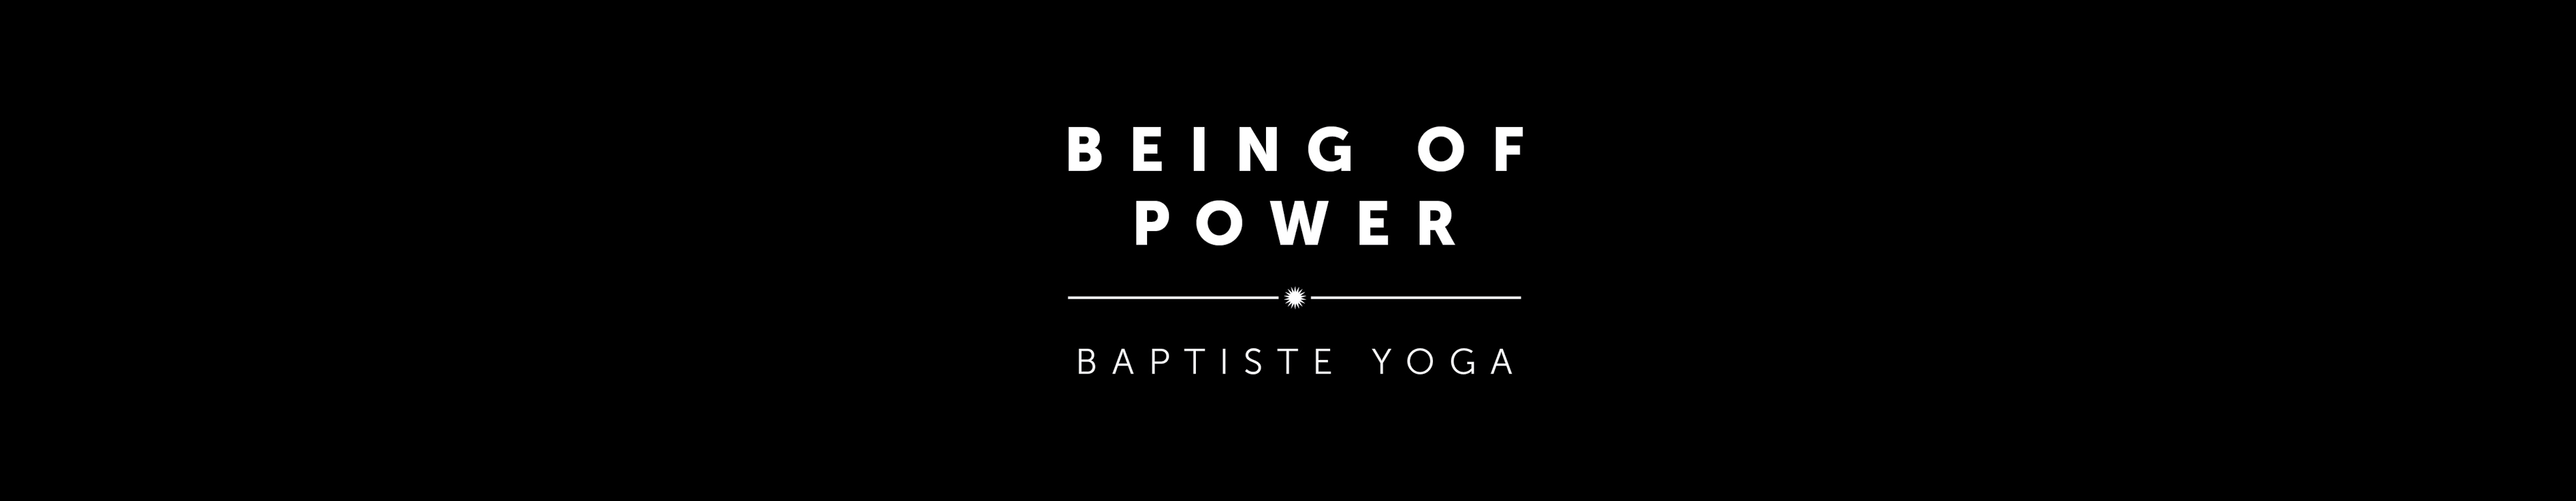 Power Yoga Canada St. Catharines | Being of Power